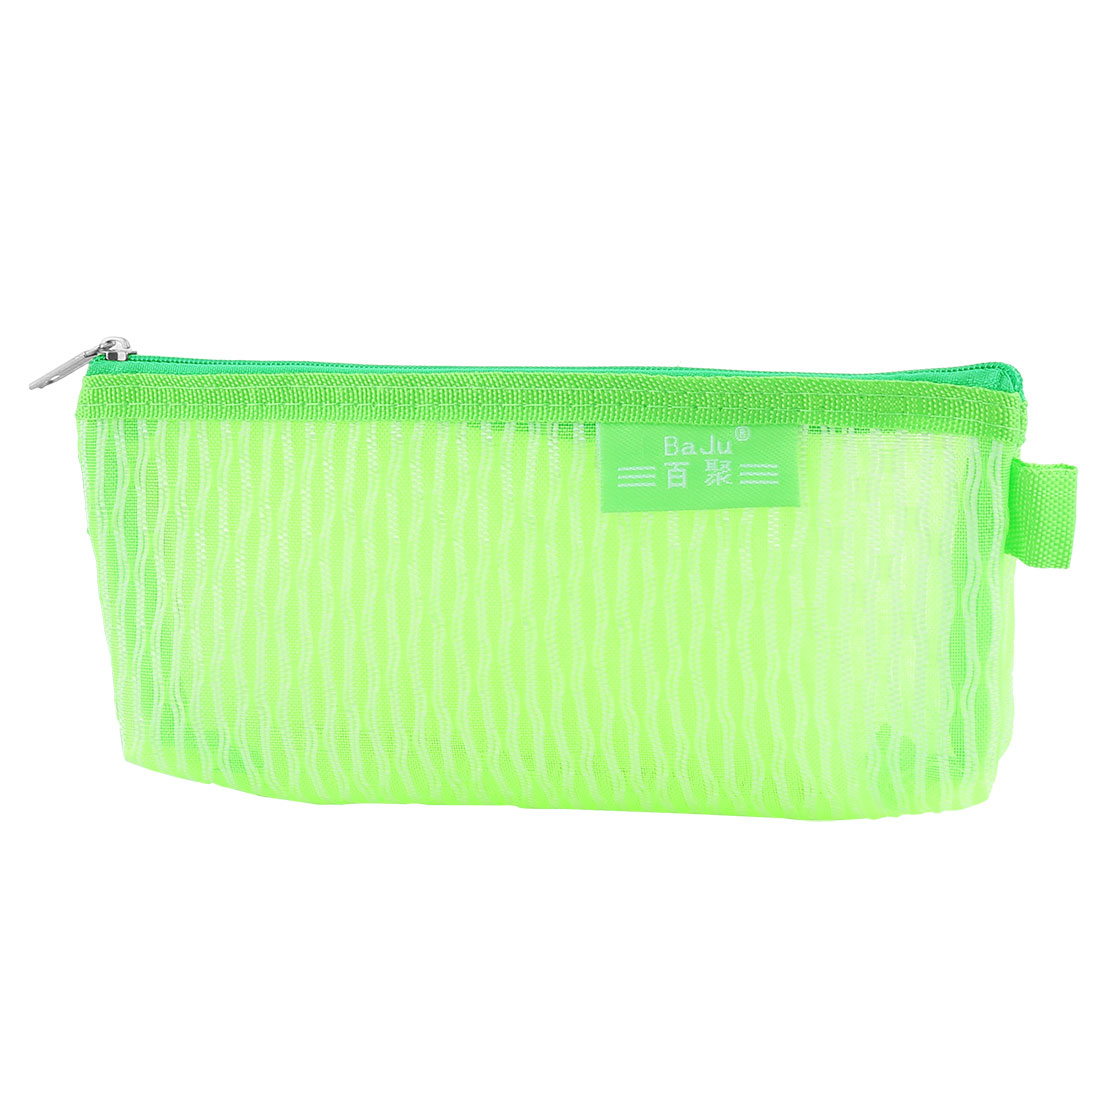 Student Nylon Mesh Zippered Pen Pencil Case Bag Stationery Pouch Holder Green